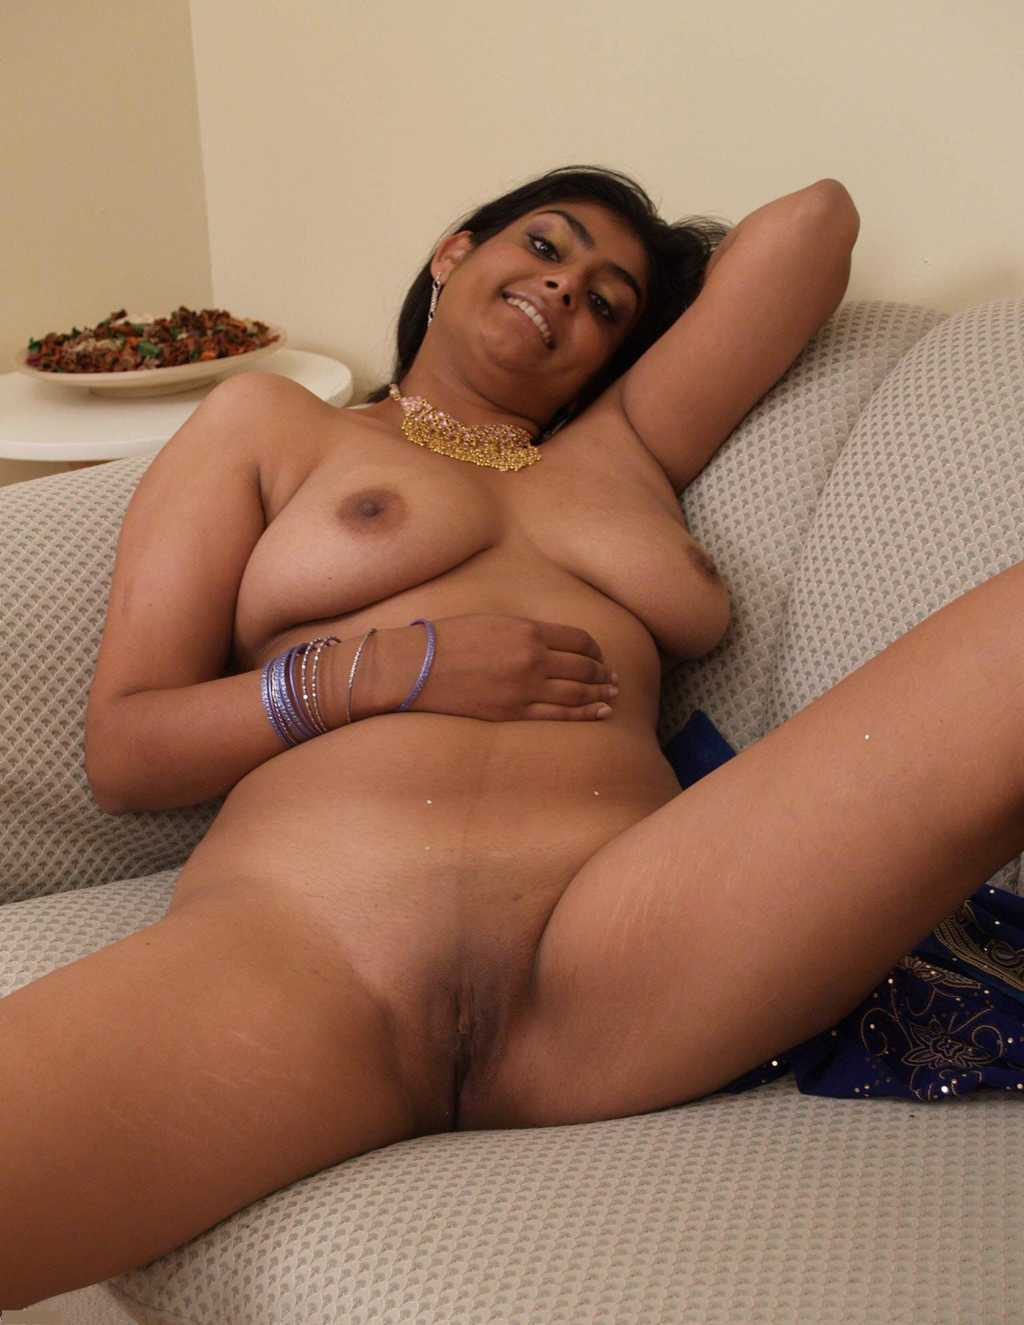 india village women nude